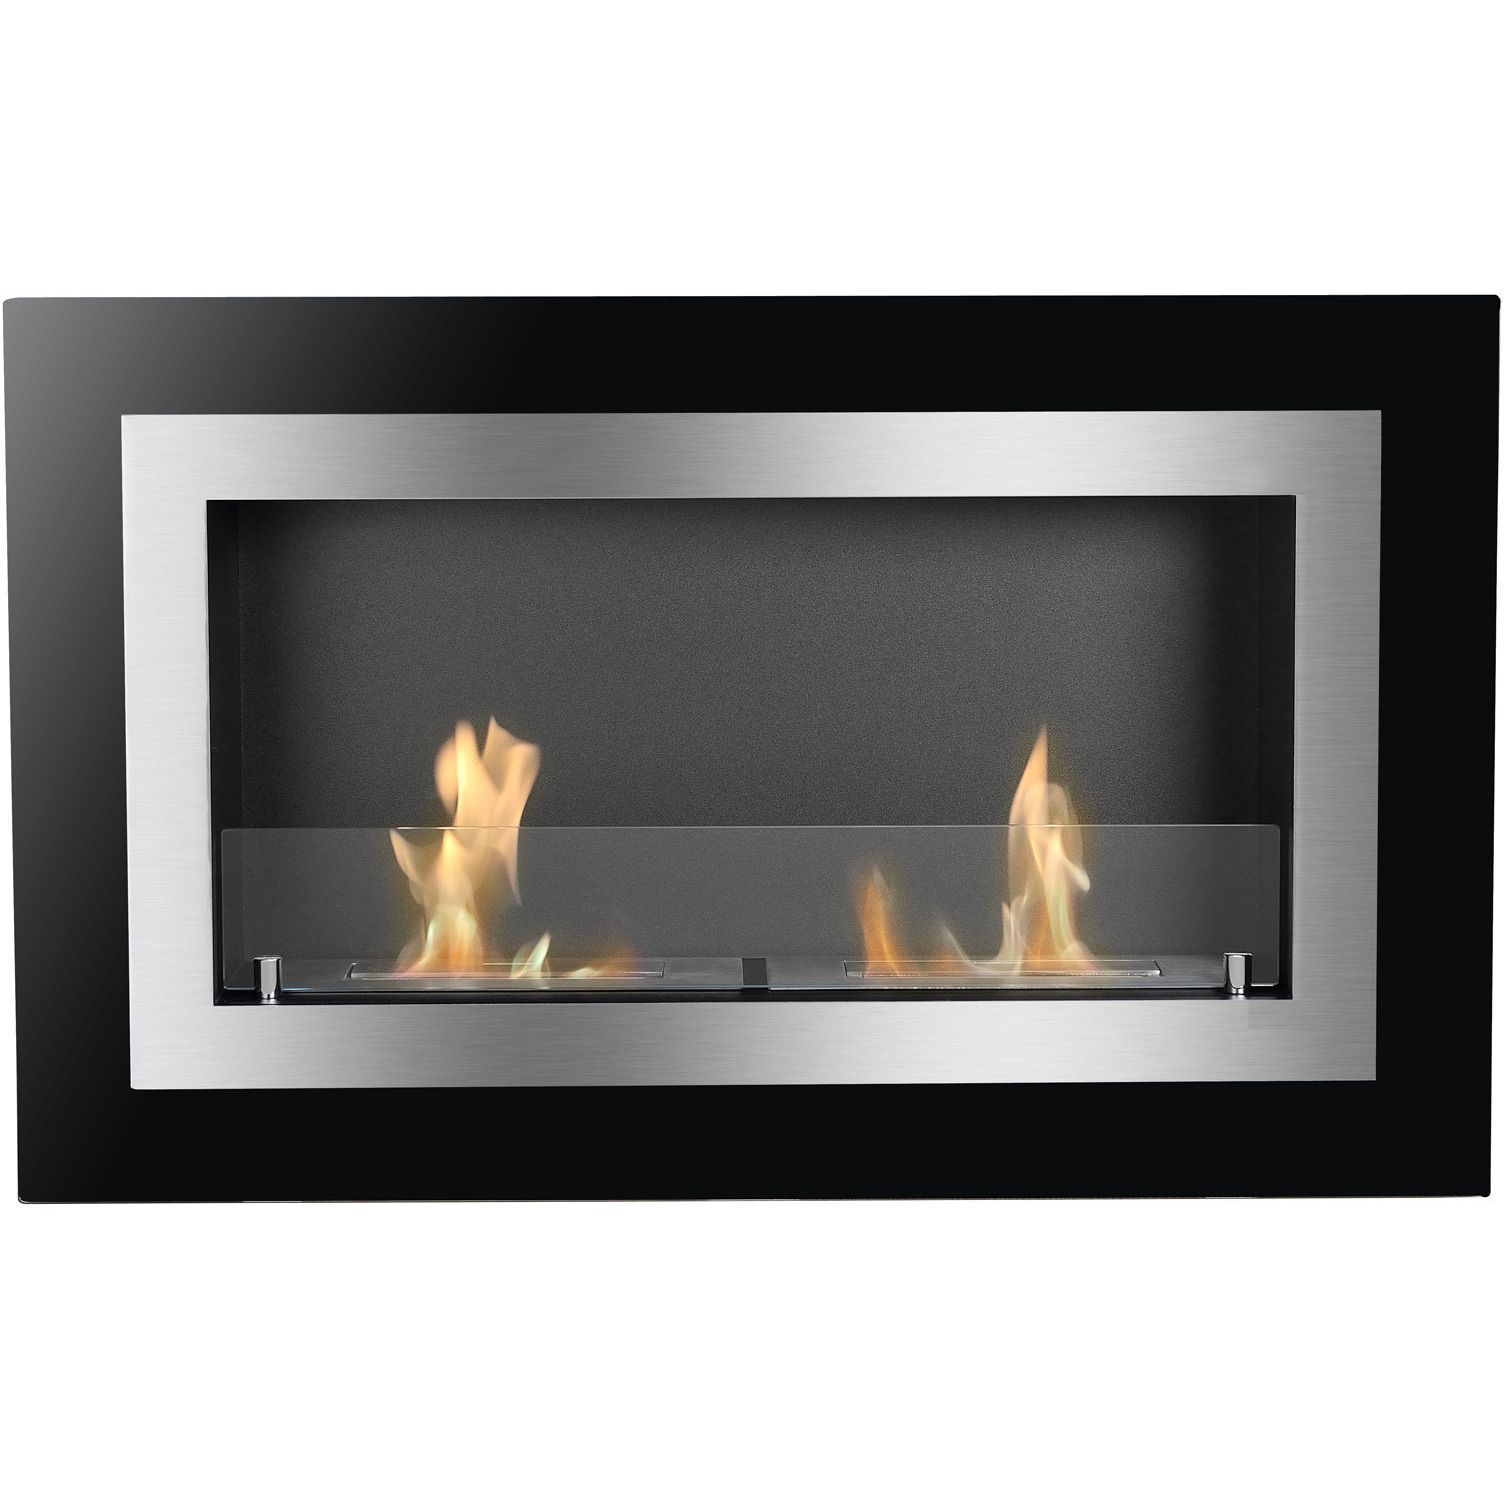 villa wall mounted ventless ethanol fireplace with glass barrier